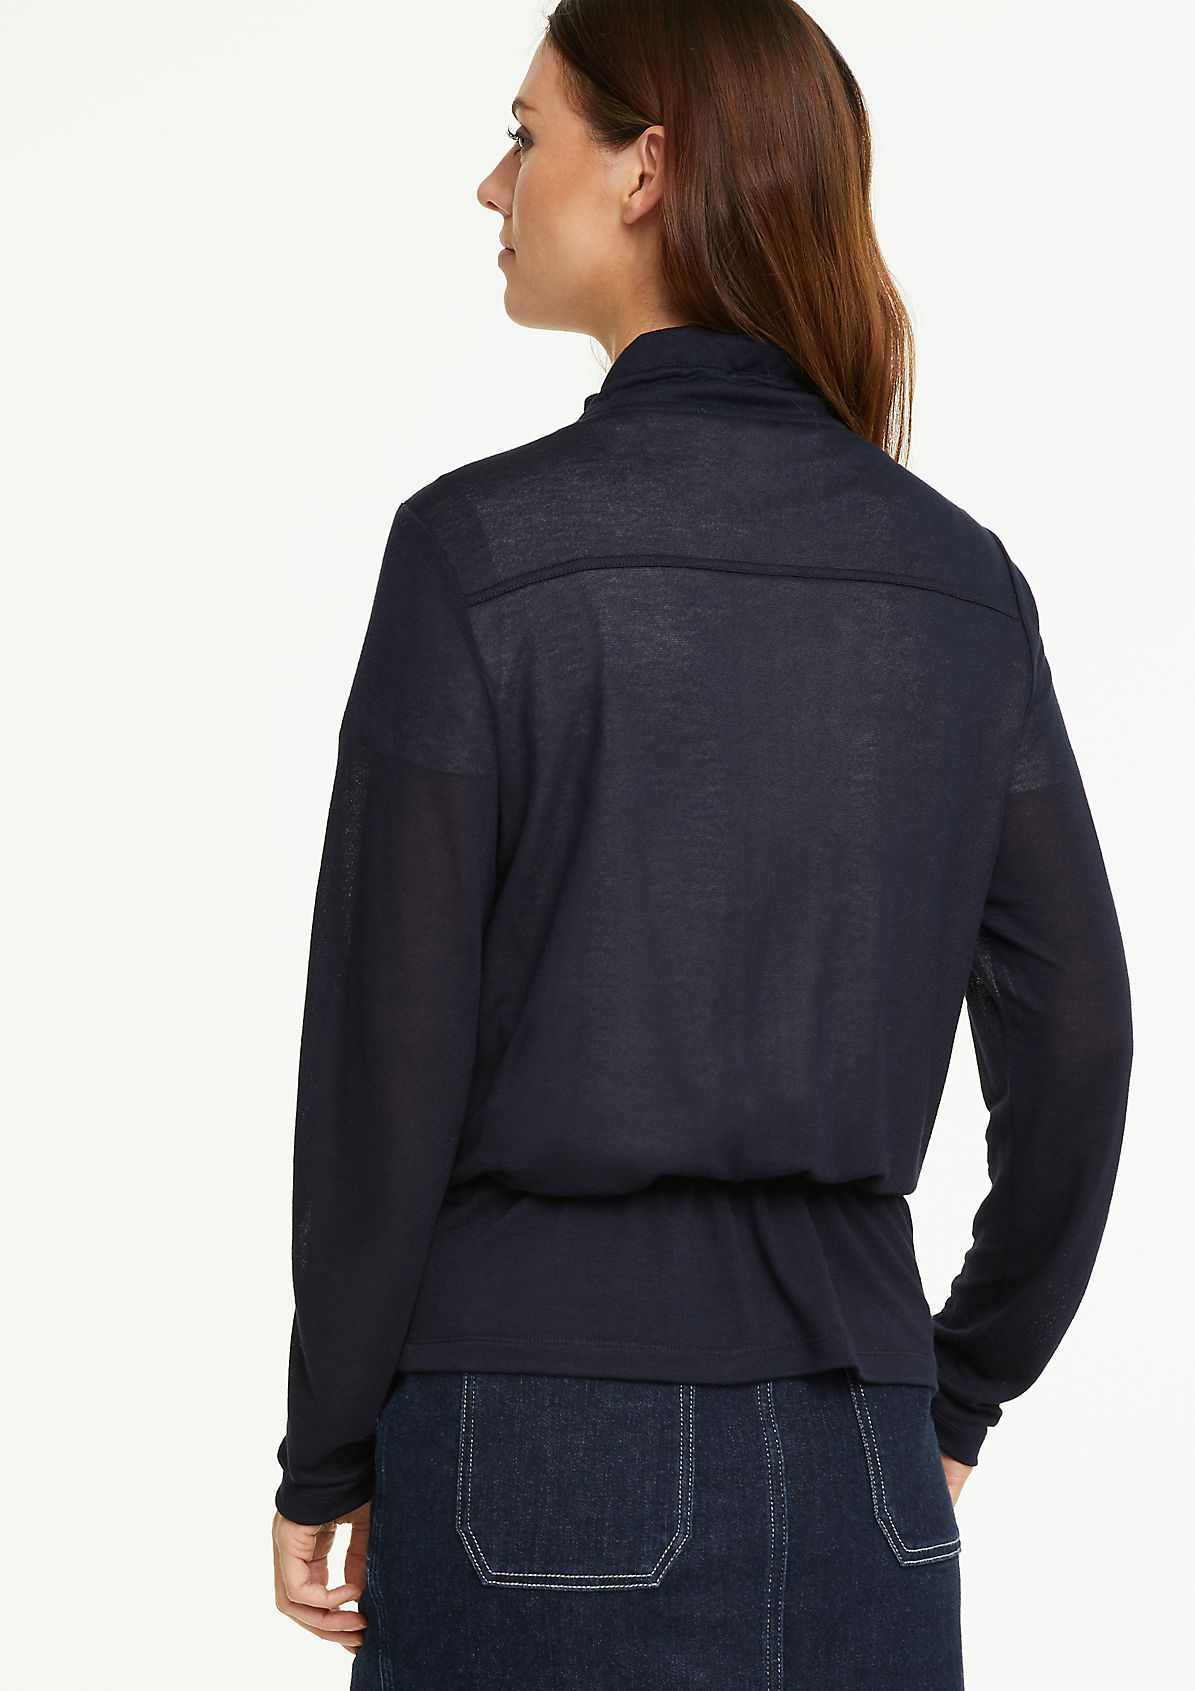 Knit jersey drawstring jacket from comma